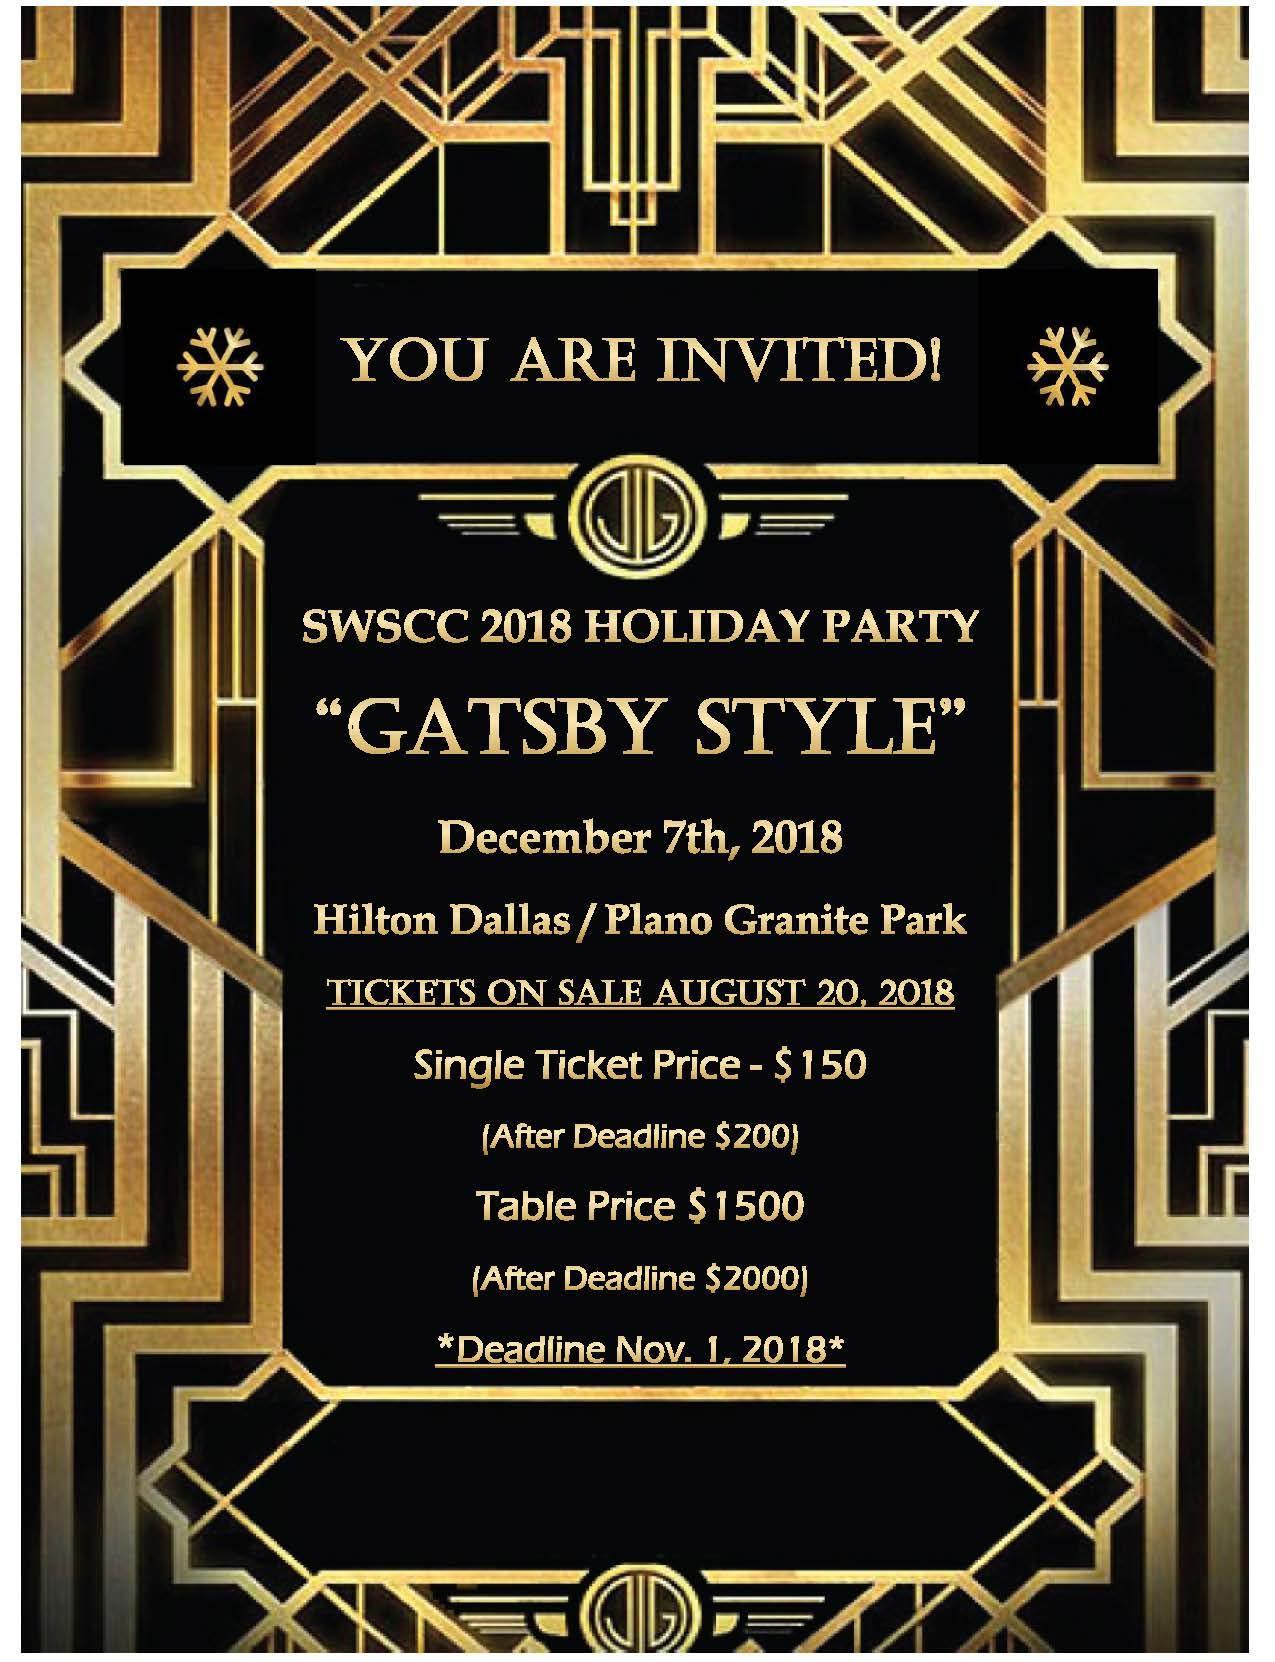 SWSCC Holiday Party Invitation Blank